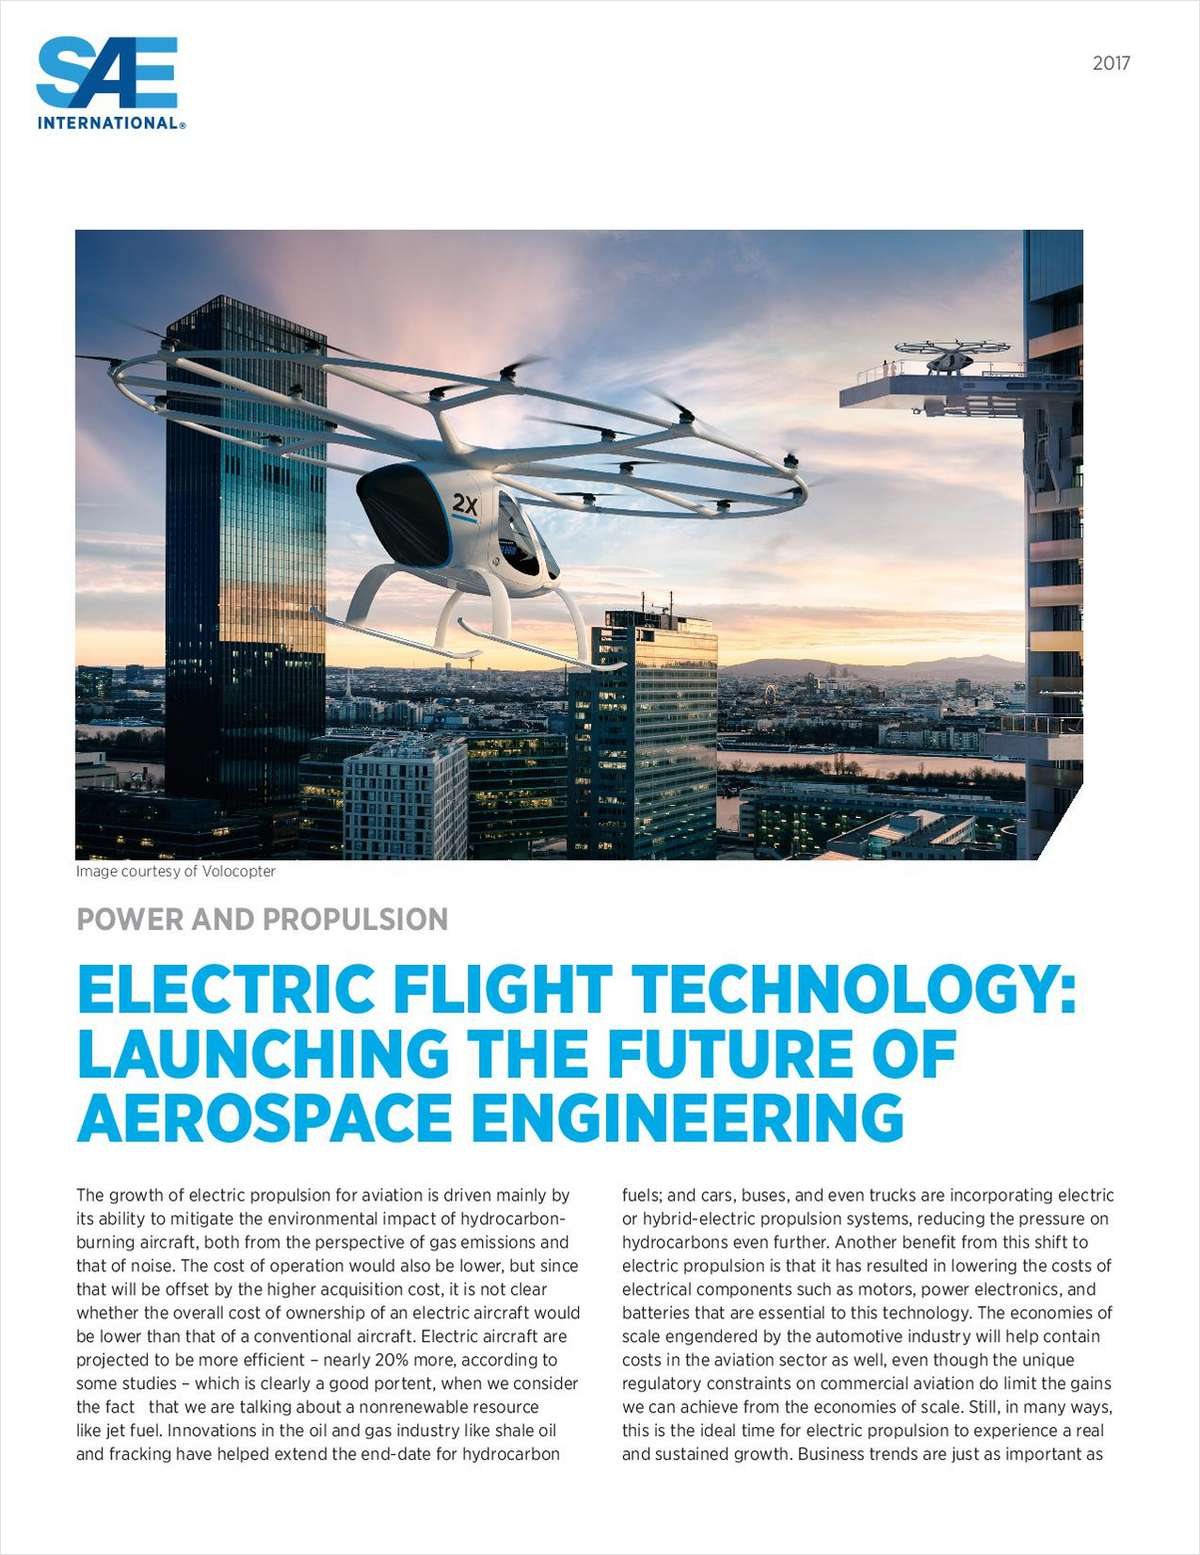 Future Of Aerospace Engineering : Electric flight technology launching the future of